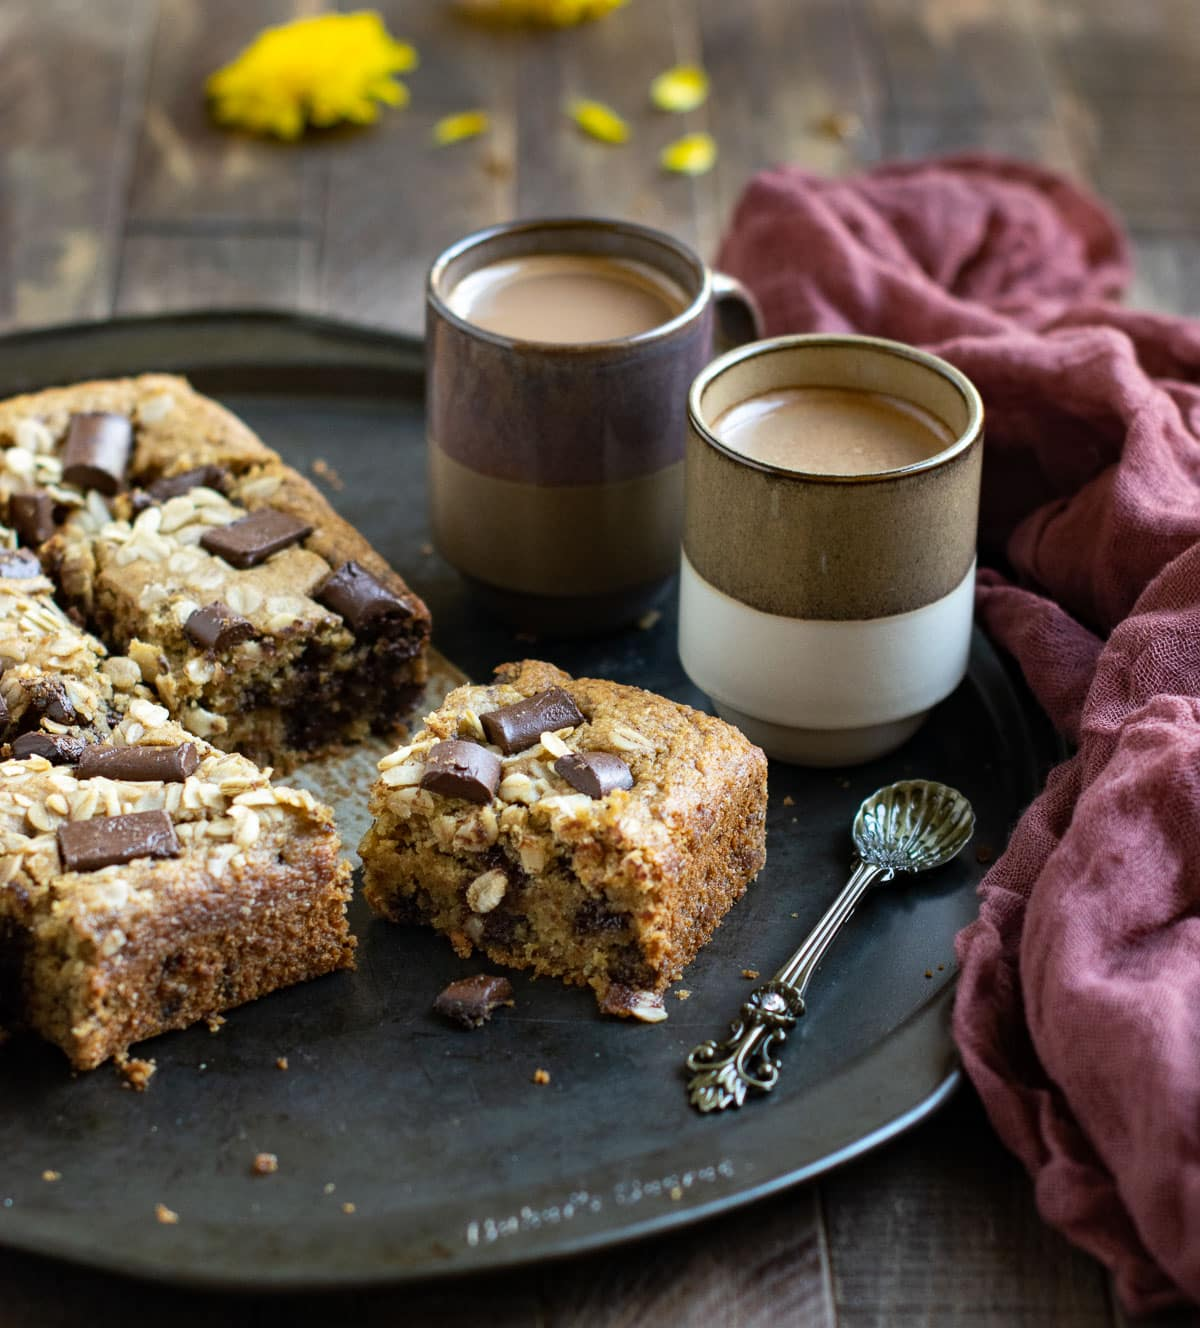 Banana Oatmeal Cake pieces served with coffee and spoon